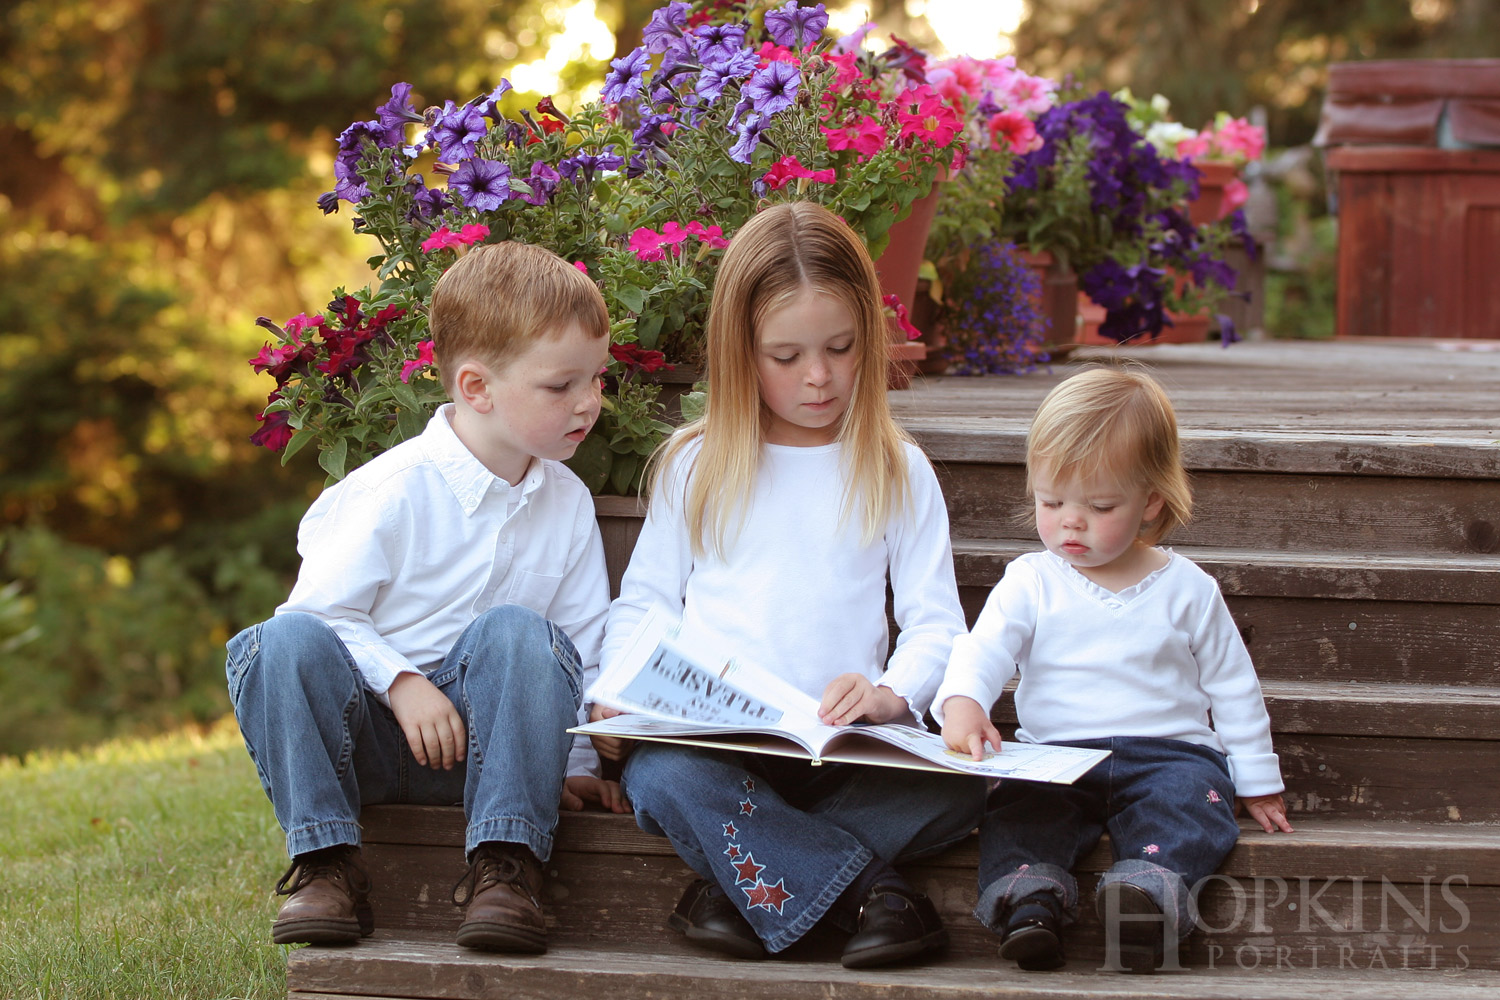 stanfield_children_portraits_location_siblings_photography.jpg